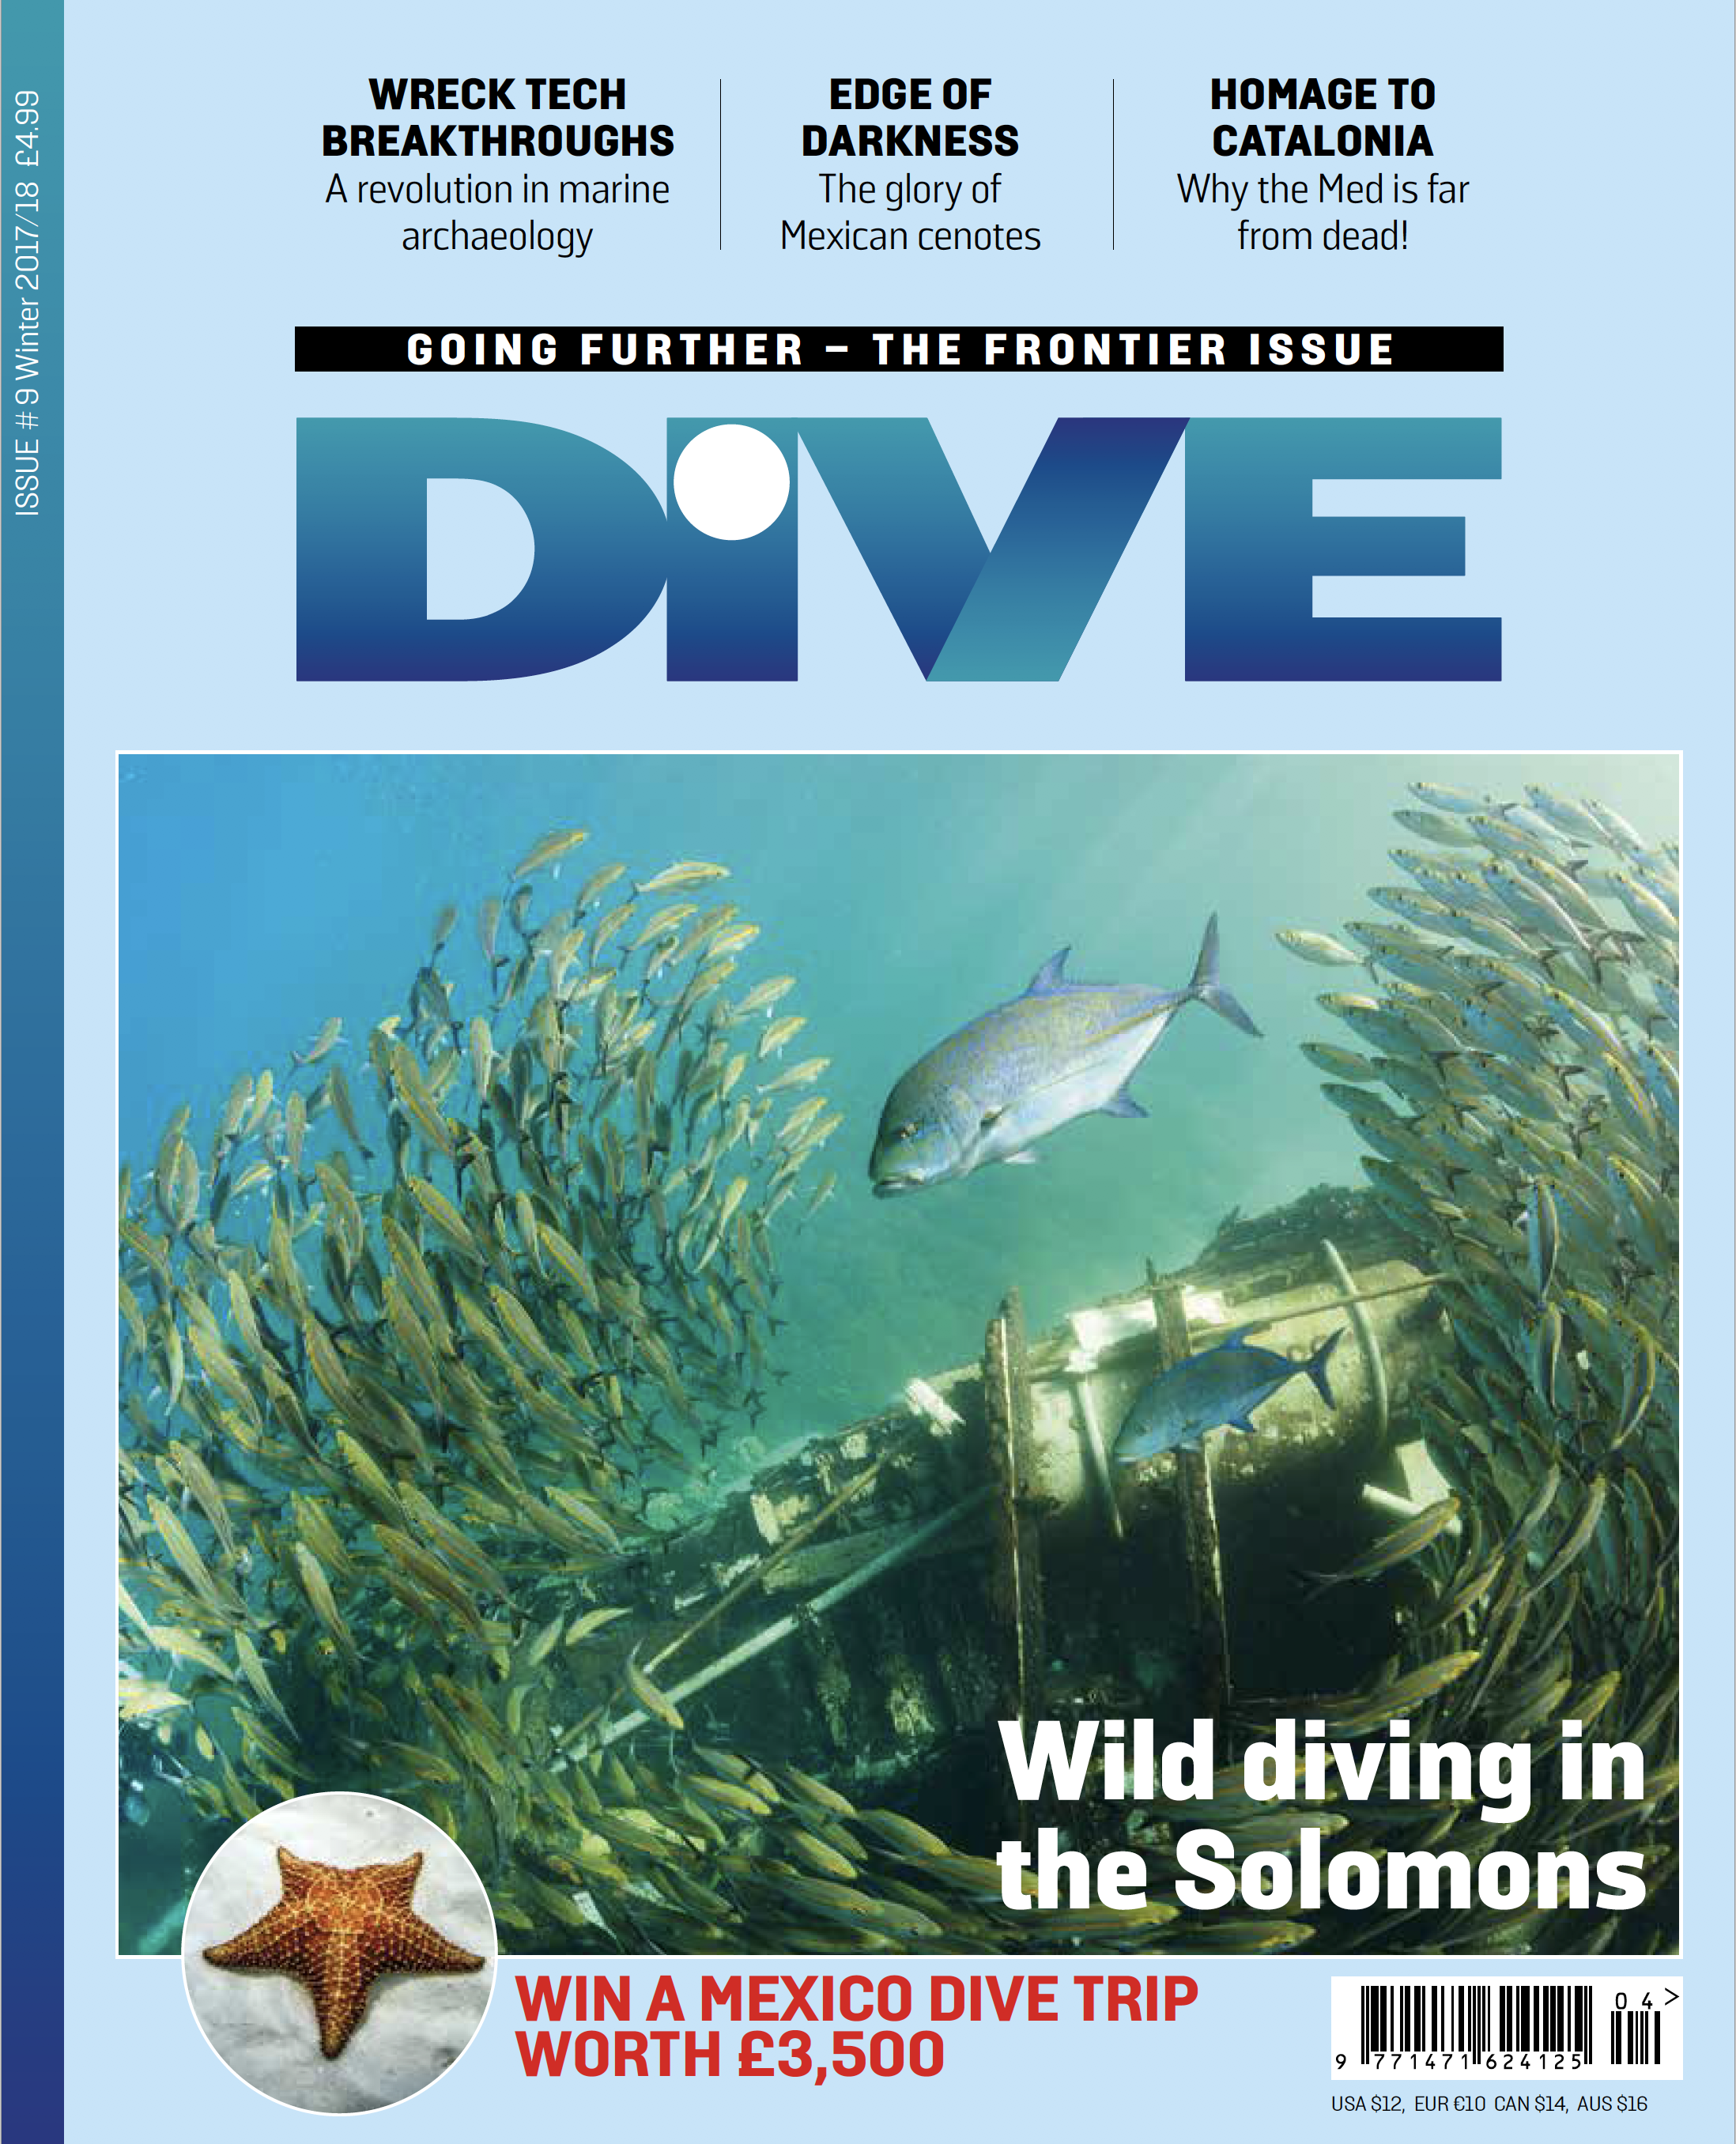 DIVE Cover Image 12-17.png